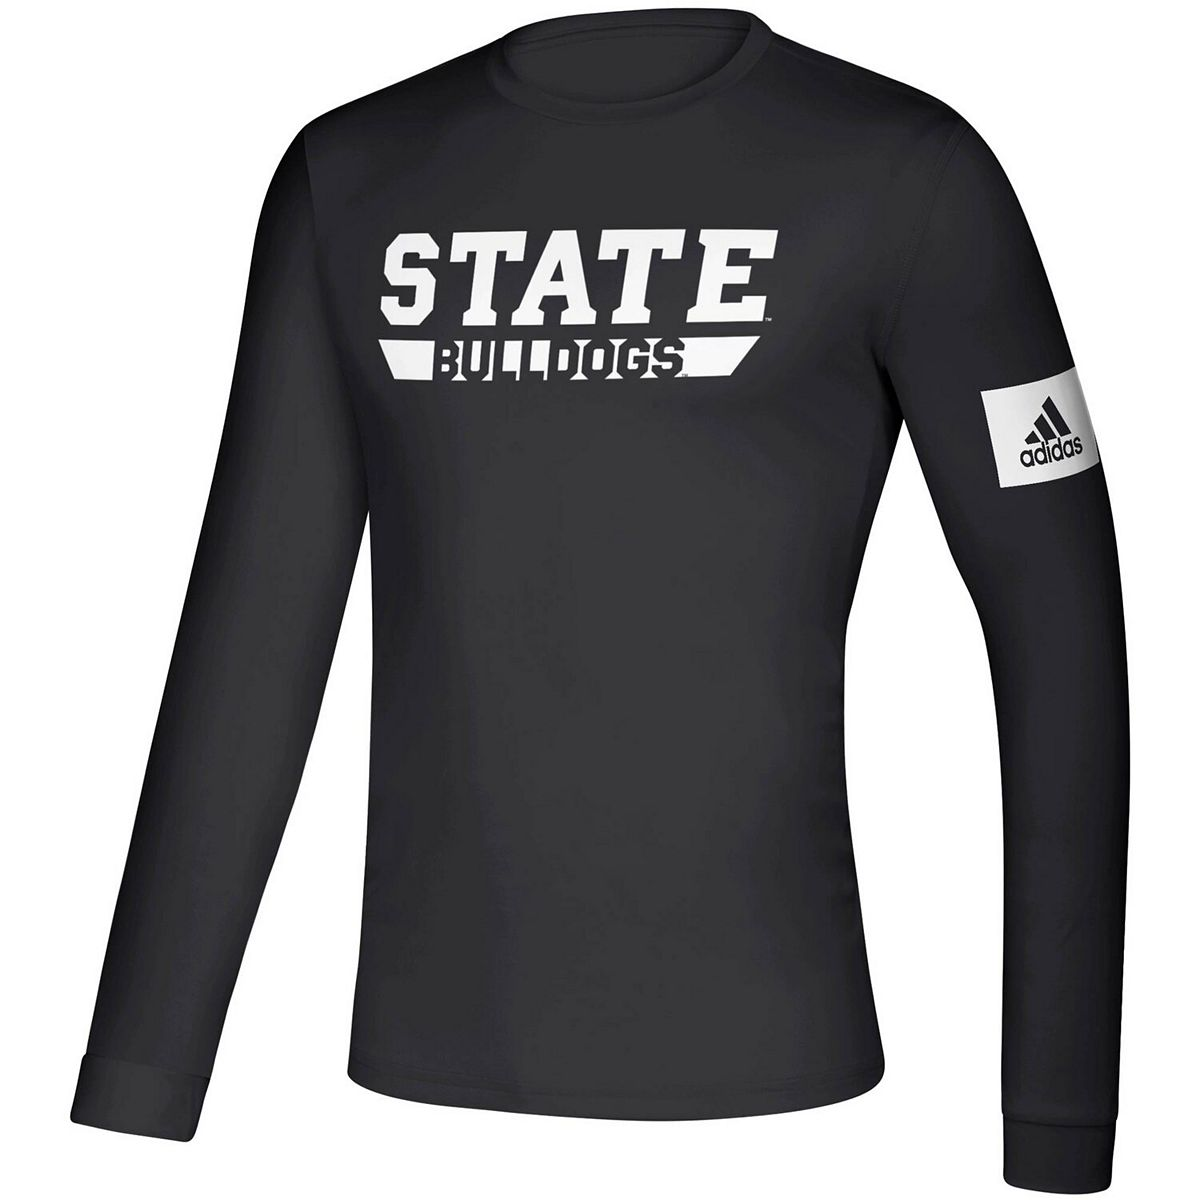 Men's adidas Black Mississippi State Bulldogs 2019 Sideline Practice Creator climalite Long Sleeve T-Shirt 0qHIG